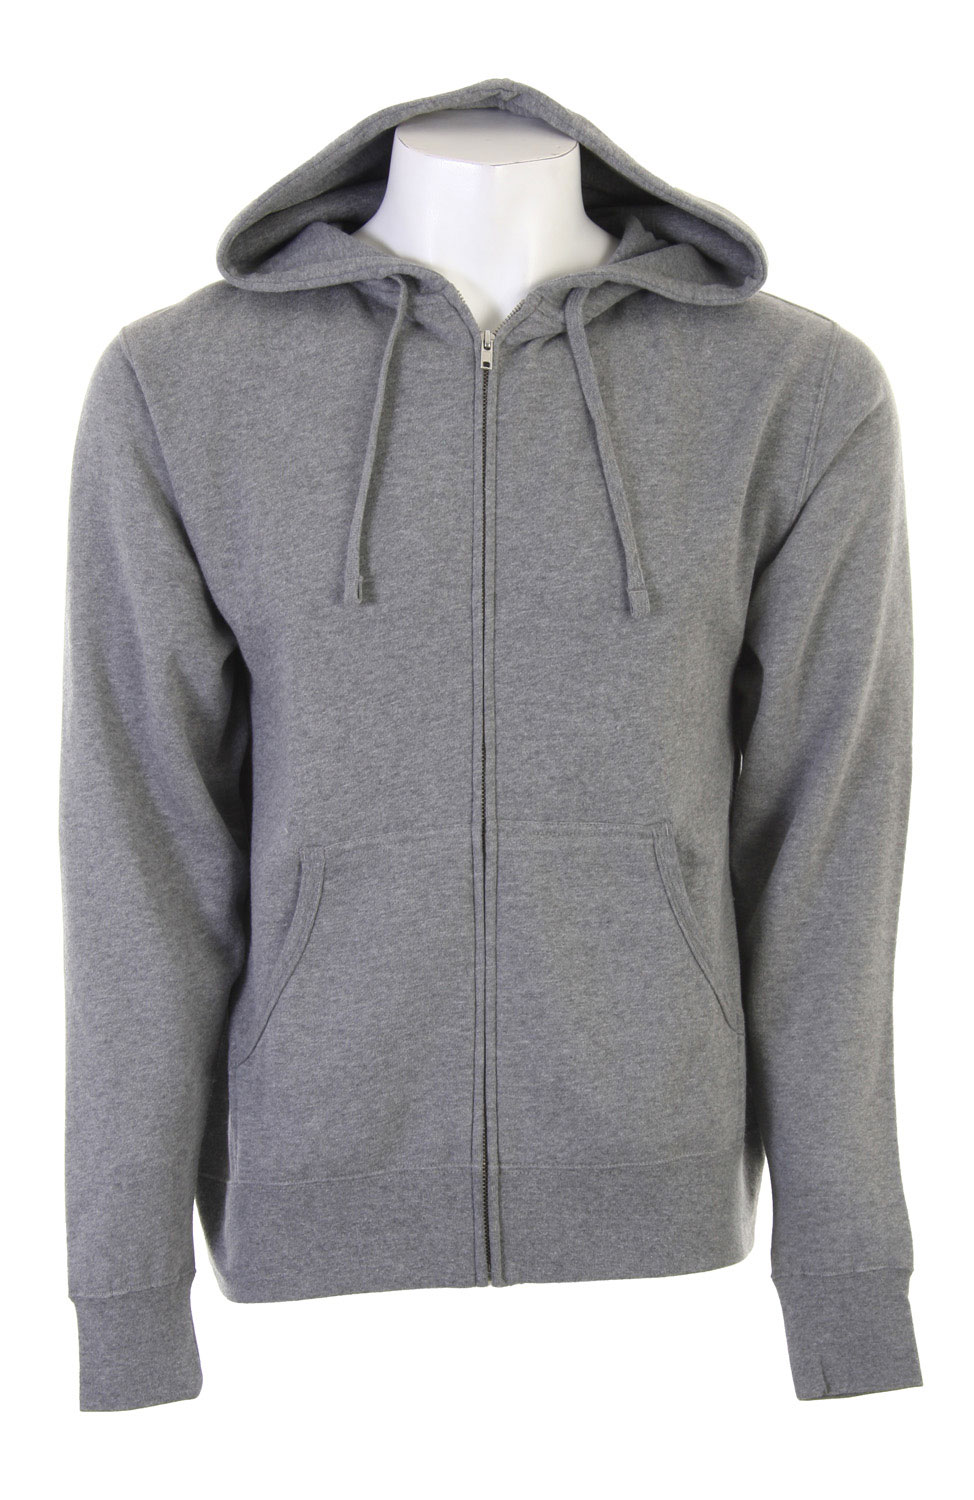 This Ashbury Thunderwing Zip Hoodie is extremely fashionable and very sleek hoodie that is absolutely fantastic for everyday use. Its 100% Cotton Slim Fit design is very comfortable and soft to the touch. Ashbury is one of the most reliable and trustworthy brands in the industry. You can rest assured that this Ashbury Thunderwig zip hoodie is only the highest of quality. You will not be disappointed. Best of all, it has an extremely affordable price tag! - $38.95